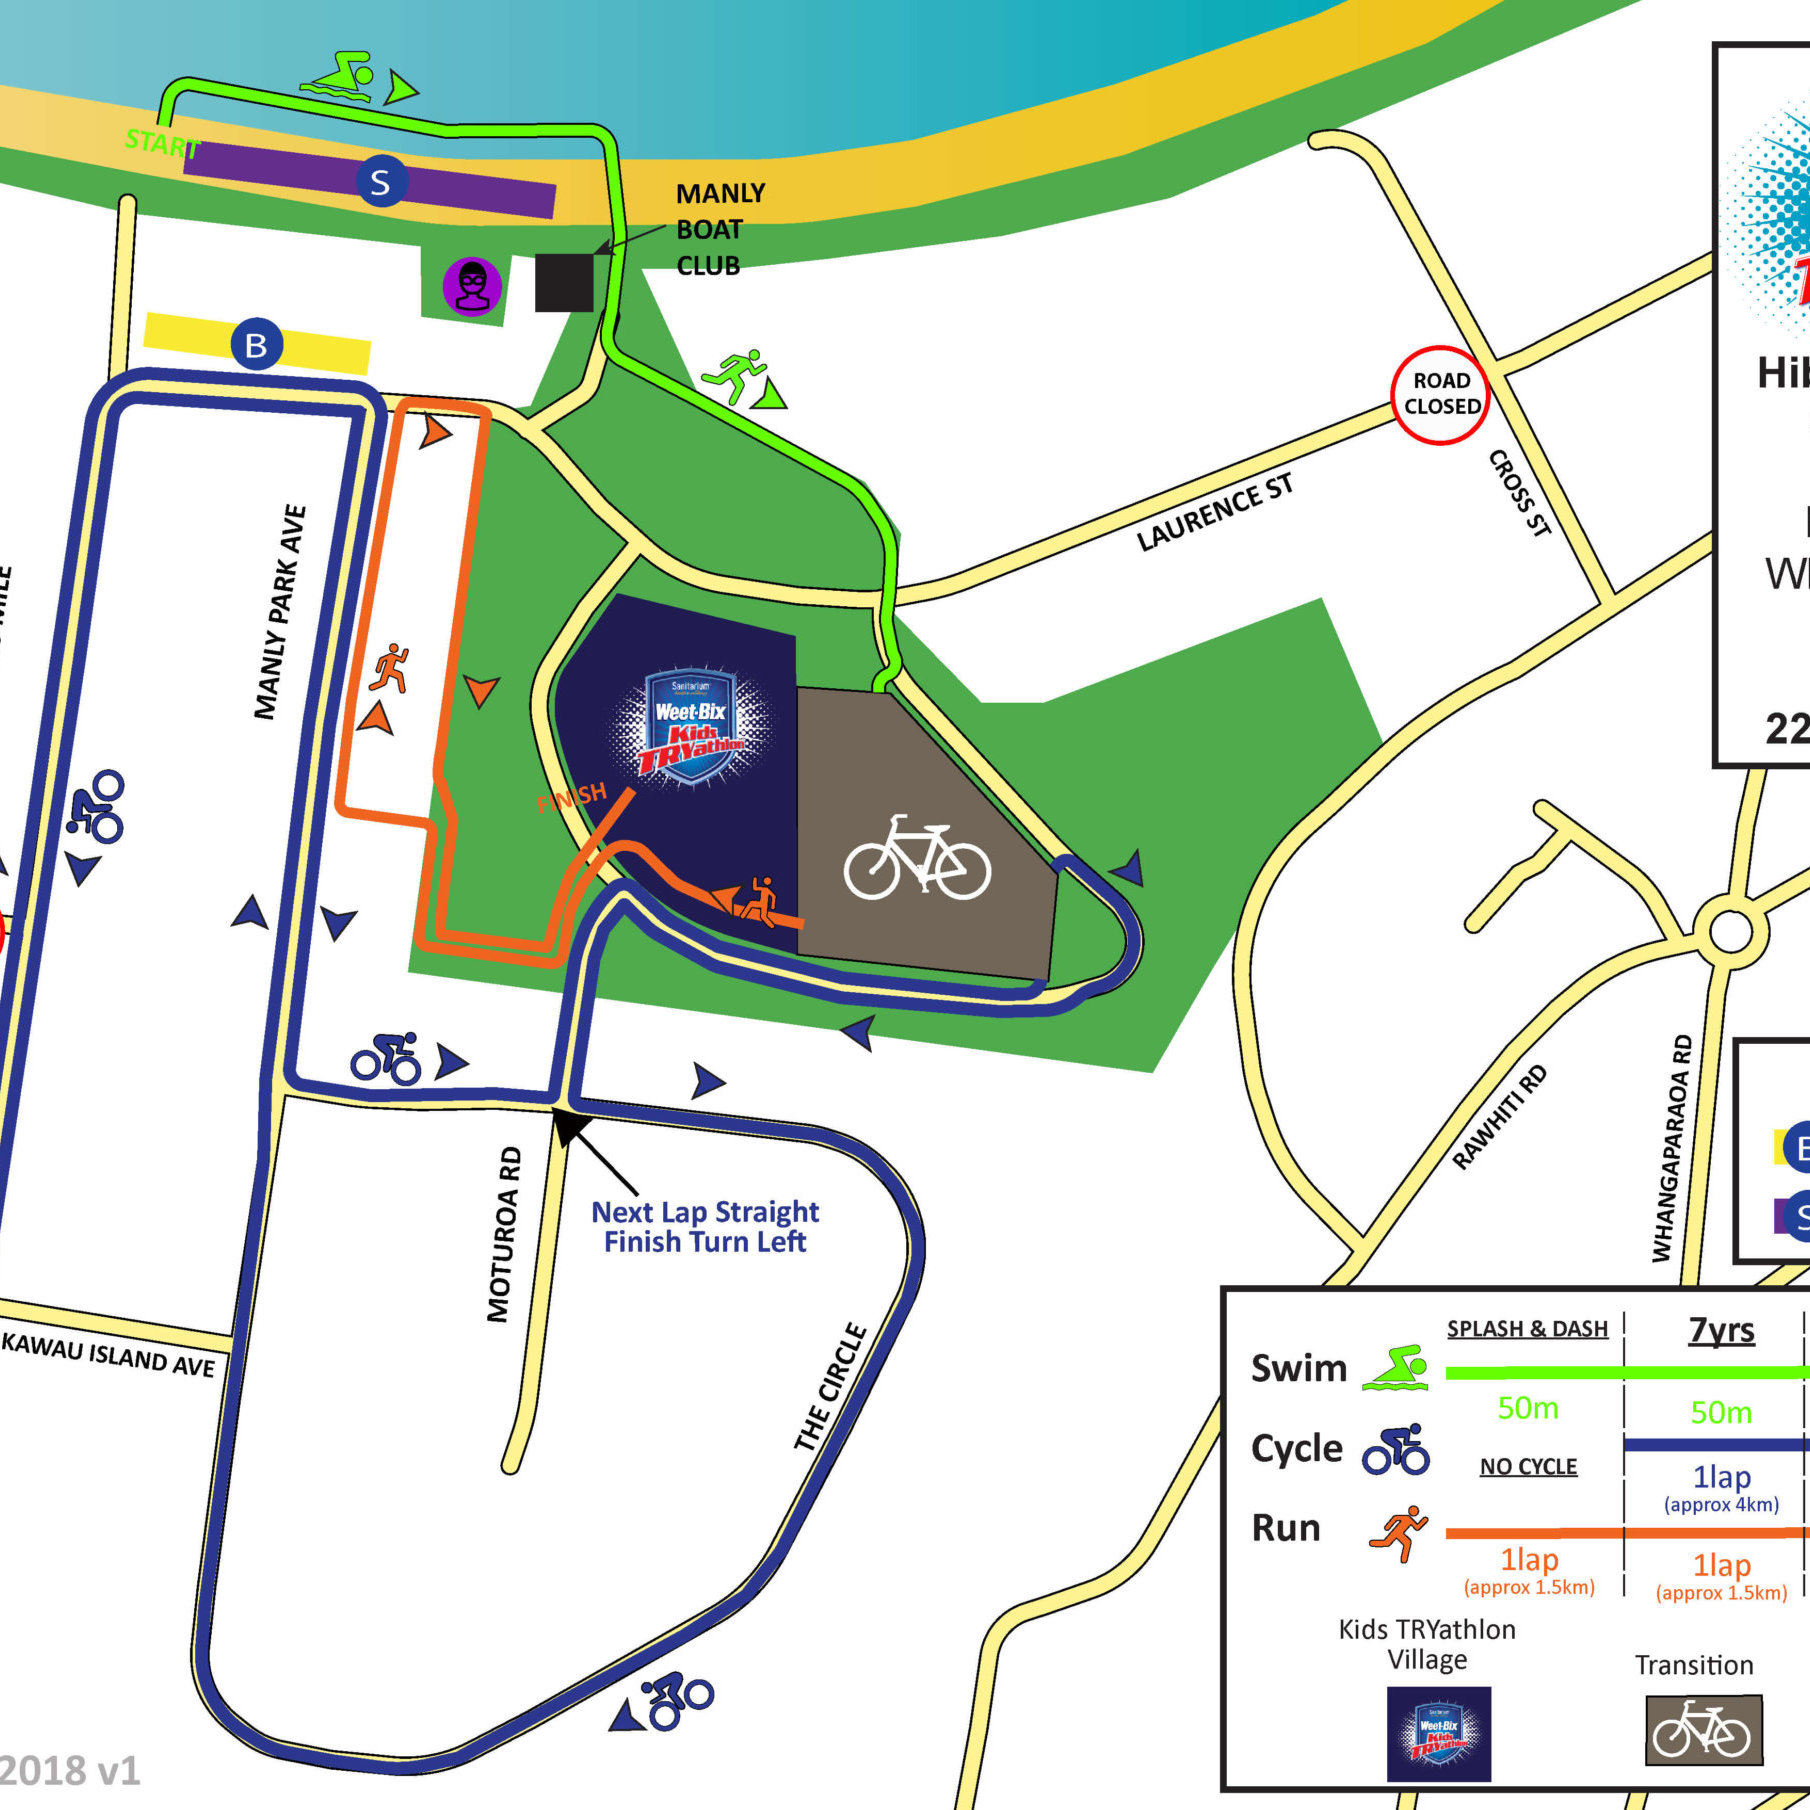 15 - SWBKT Hibiscus Coast Course Map 2020 FINAL